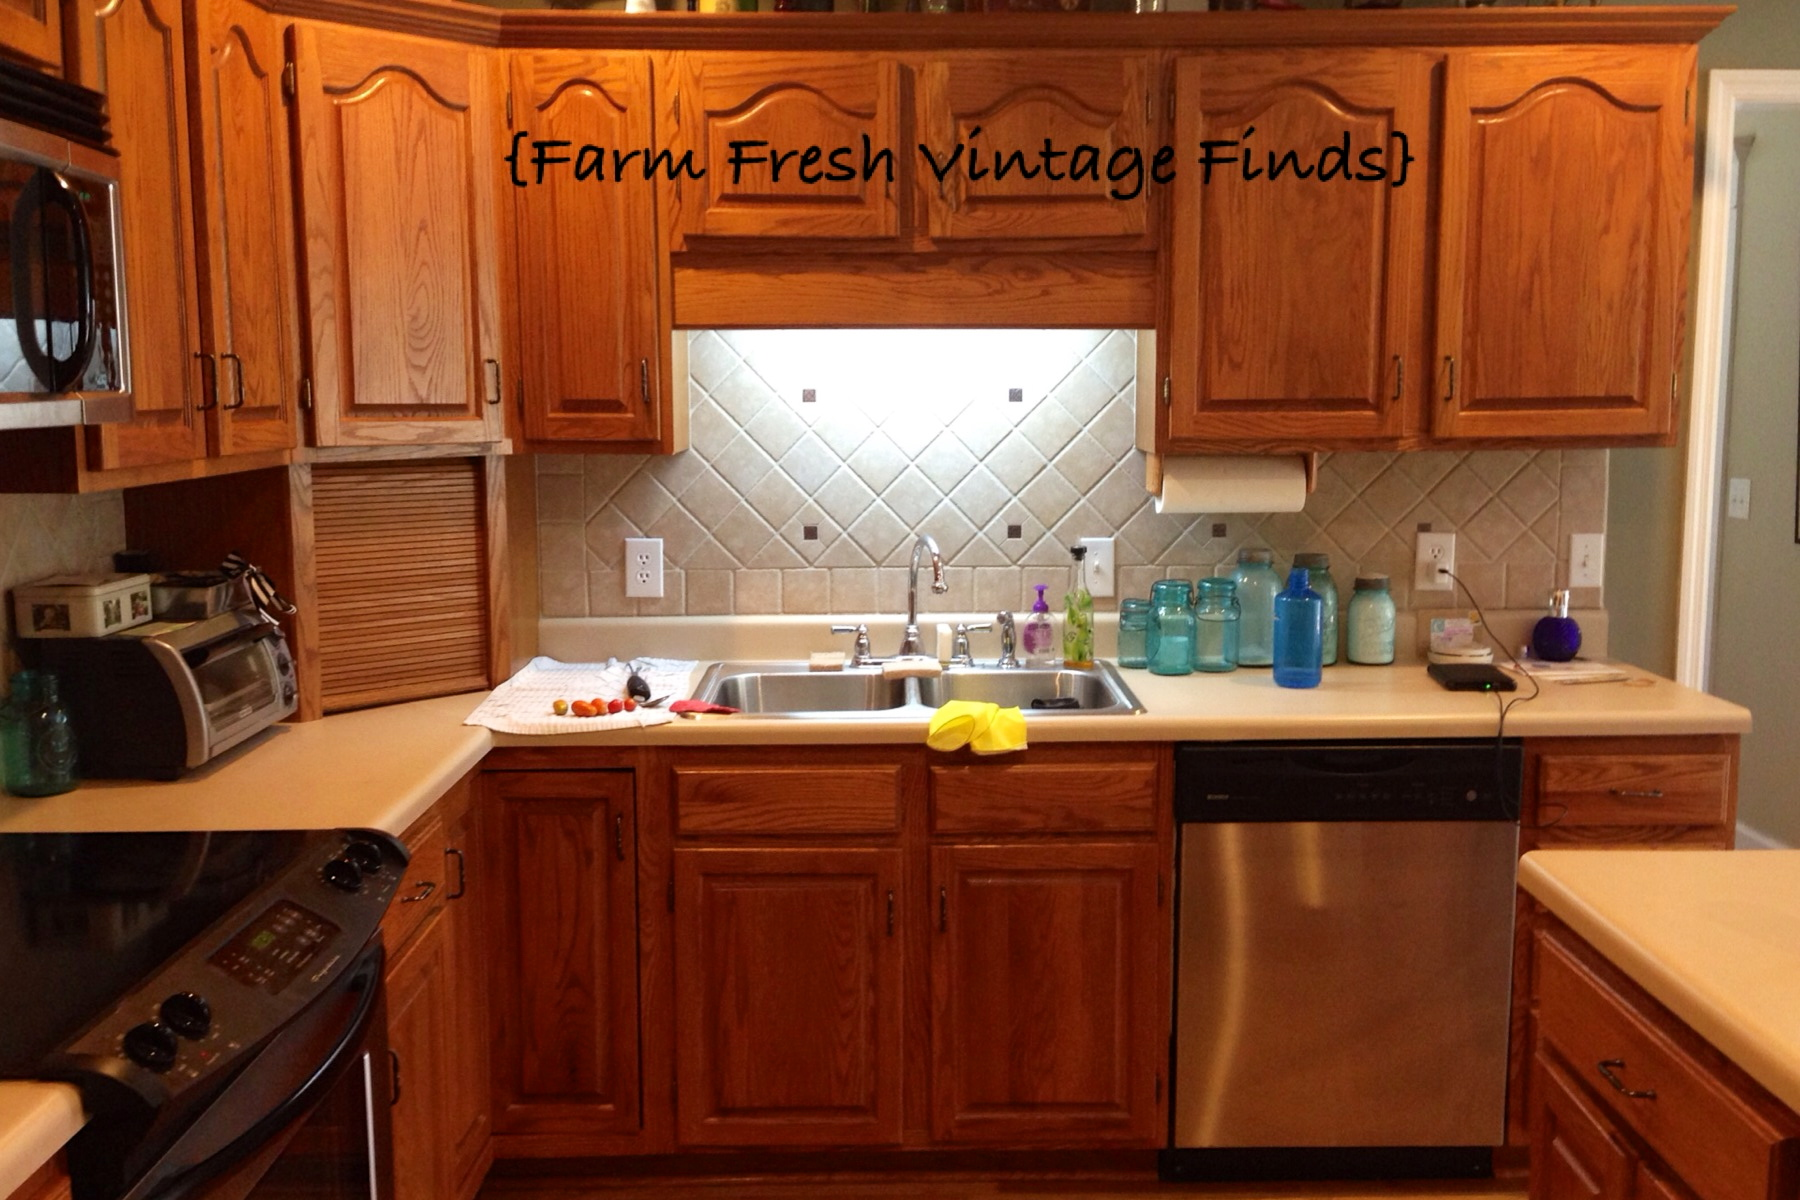 Annie Sloan Kitchen Cabinets How To Paint Your Kitchen Cabinets Using Annie Sloan The